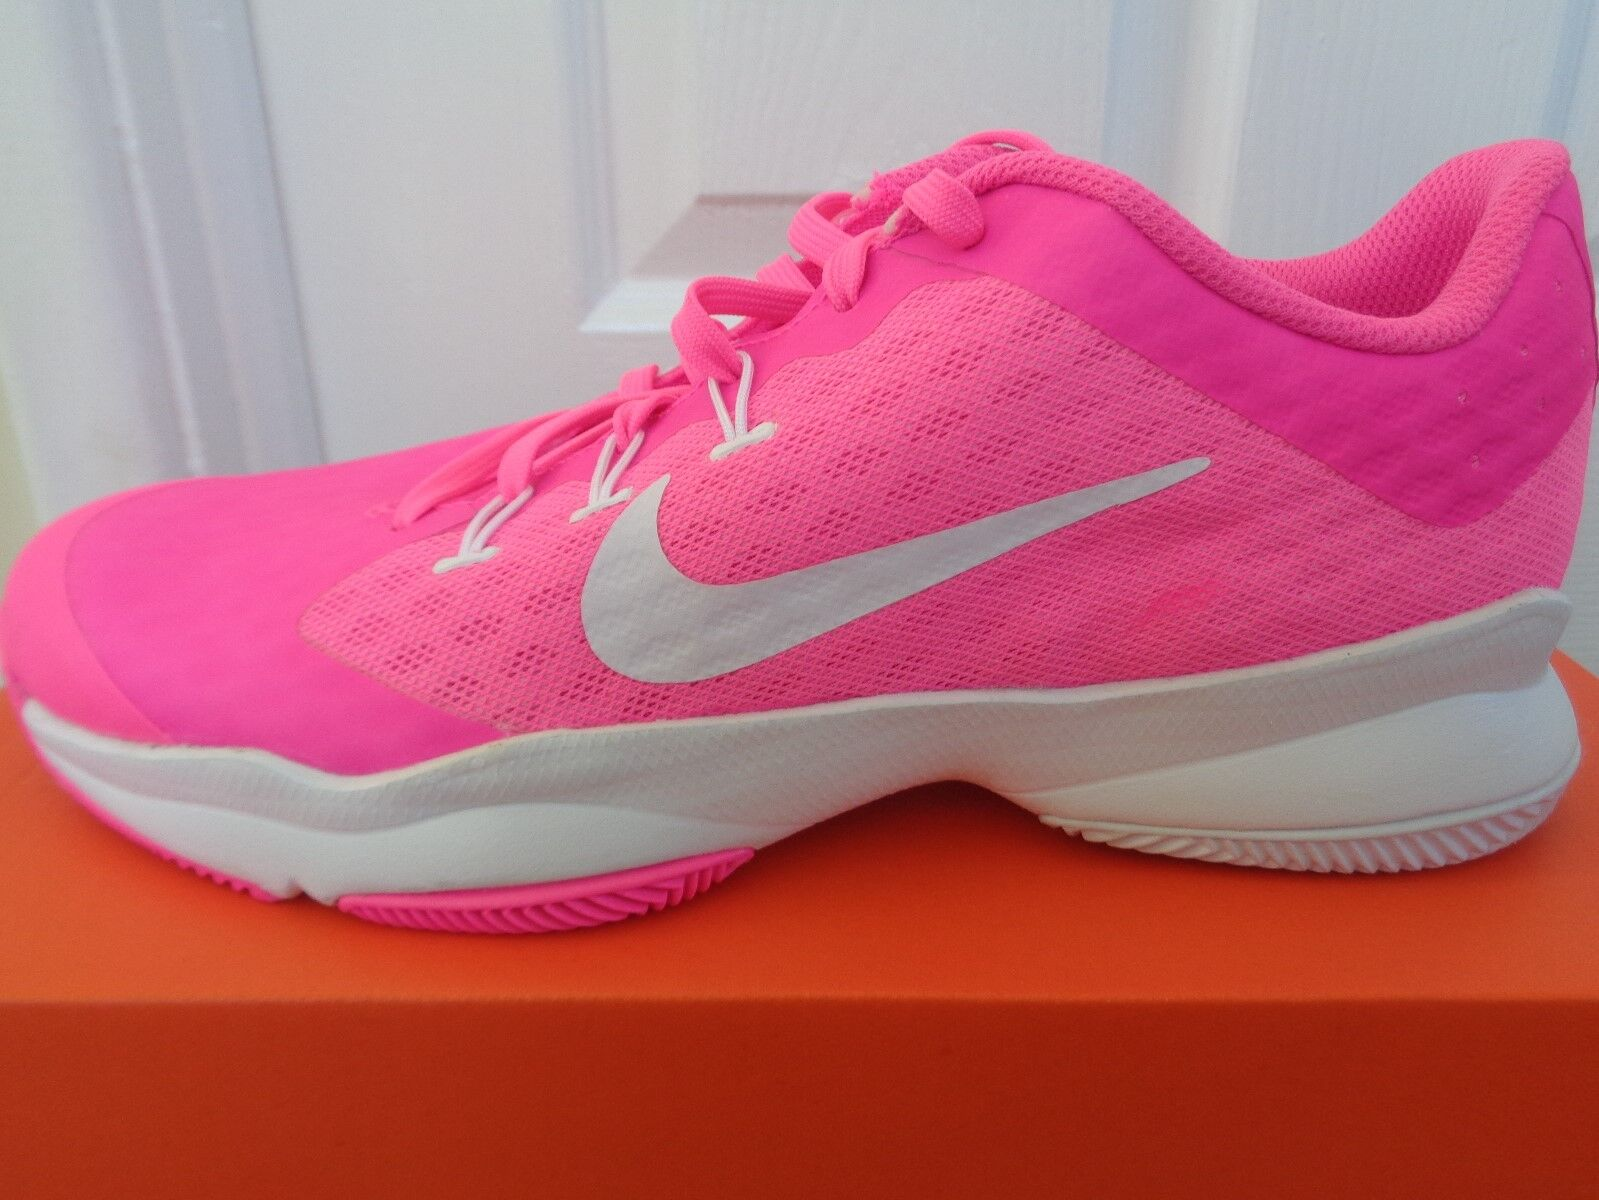 Nike Air Zoom Ultra Donna trainers shoes 845046 610 uk 6.5 eu 40.5 us 9 NEW+BOX